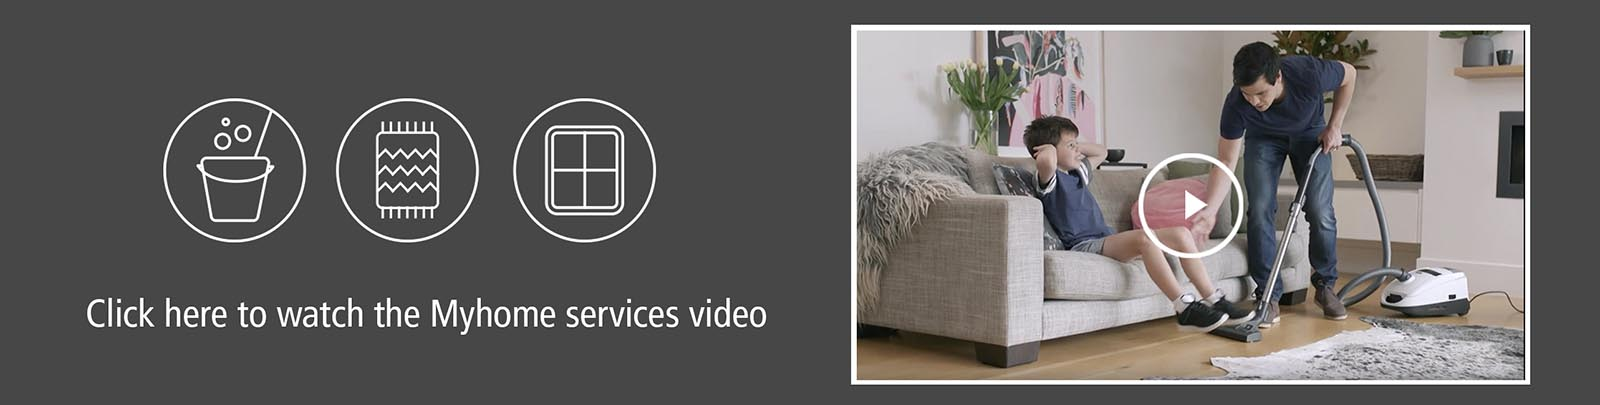 Click here to watch the Myhome services video